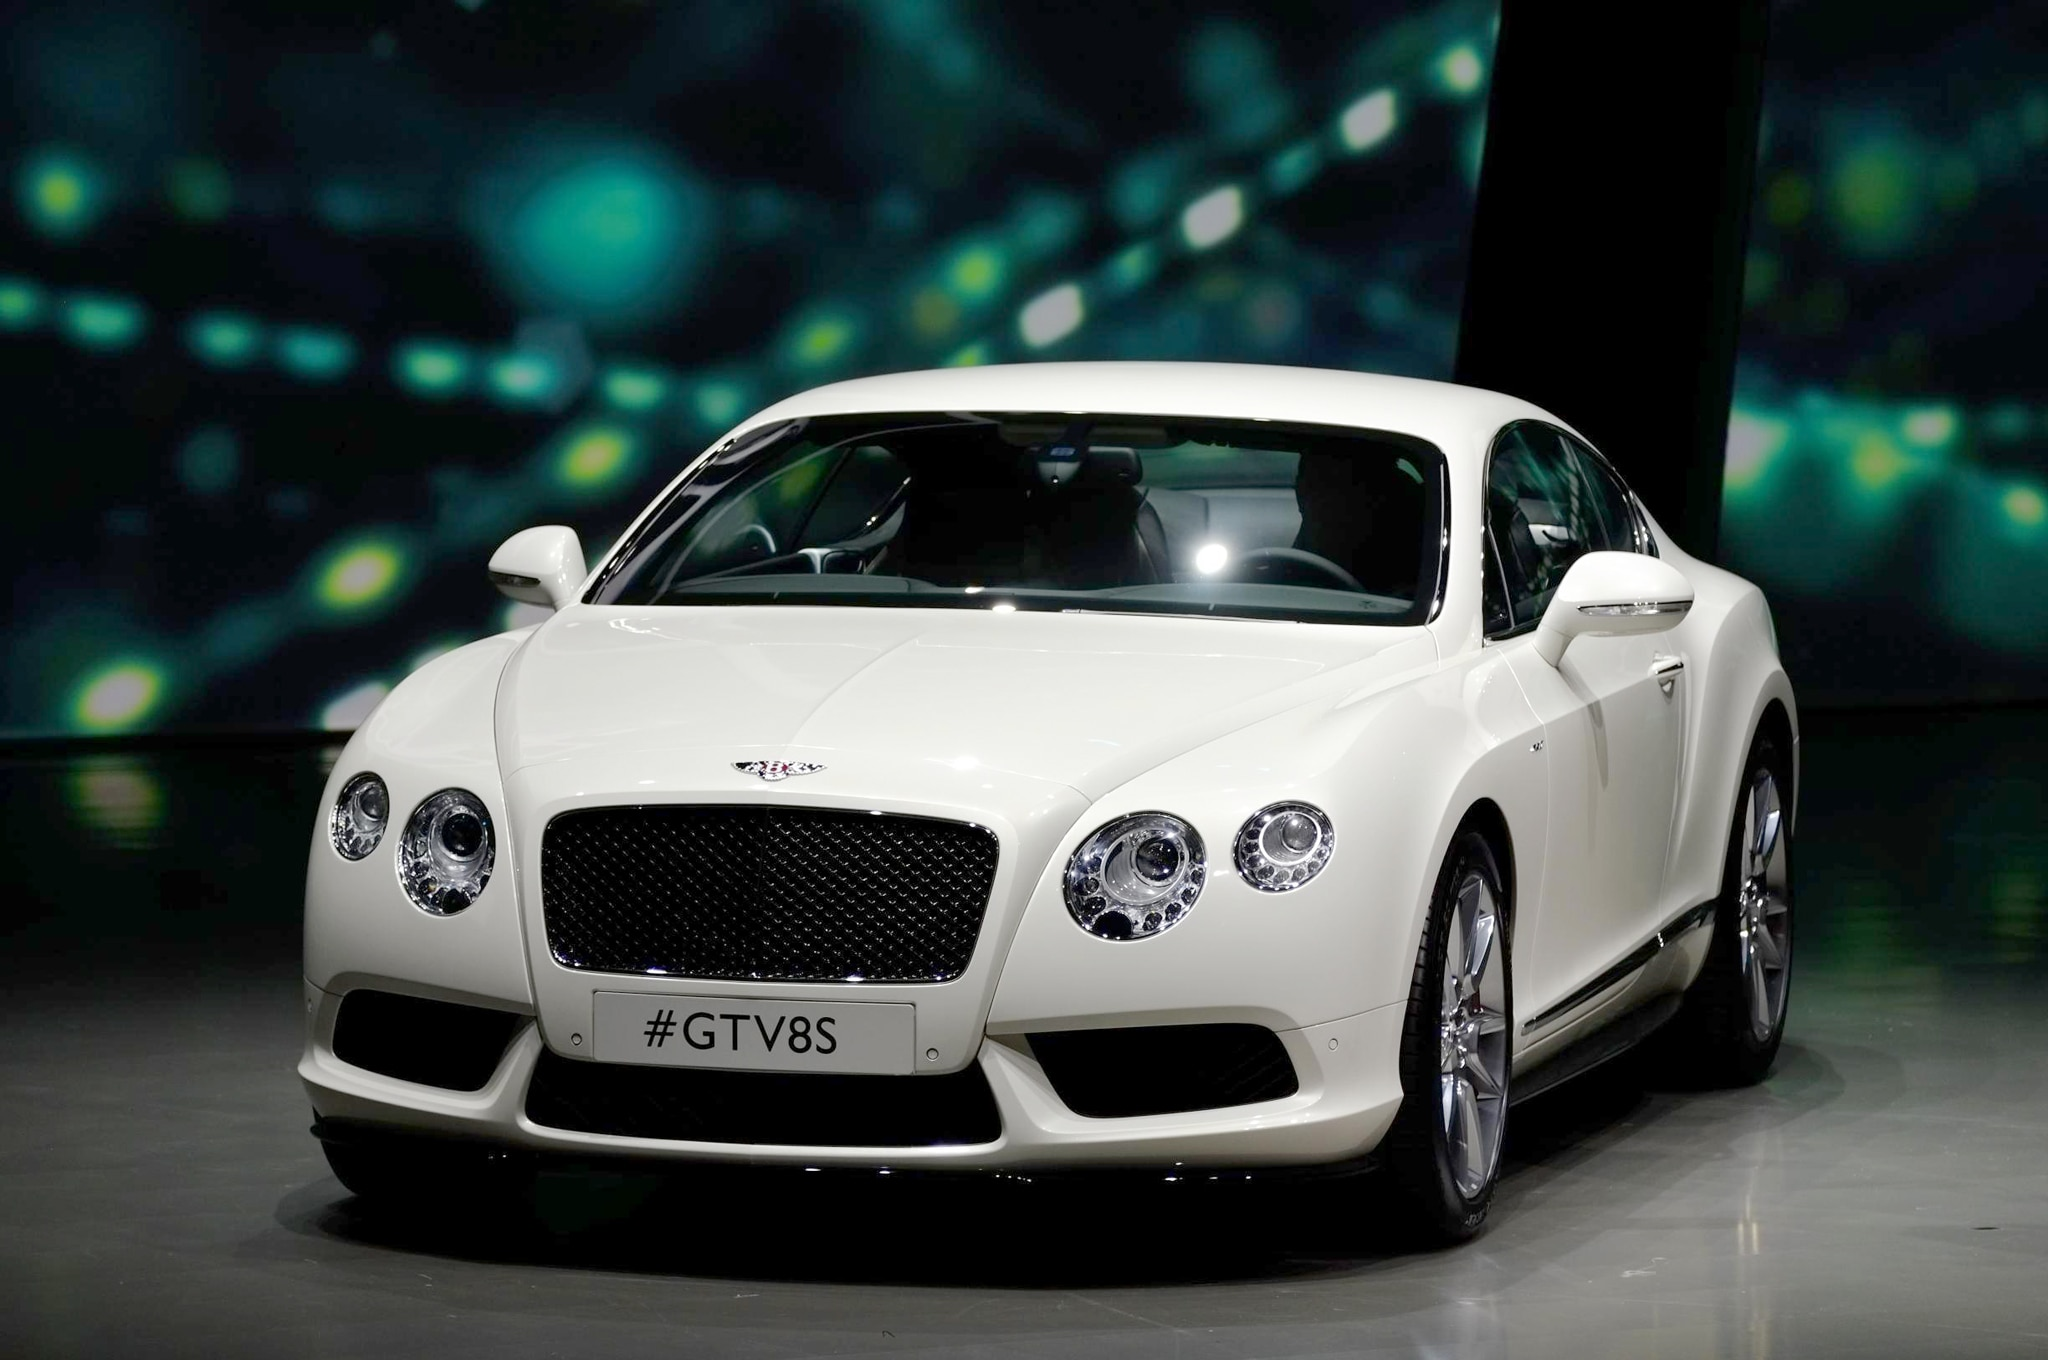 bentley subscription bentayga news spied turbodisel magazine front models car new turbodiesel